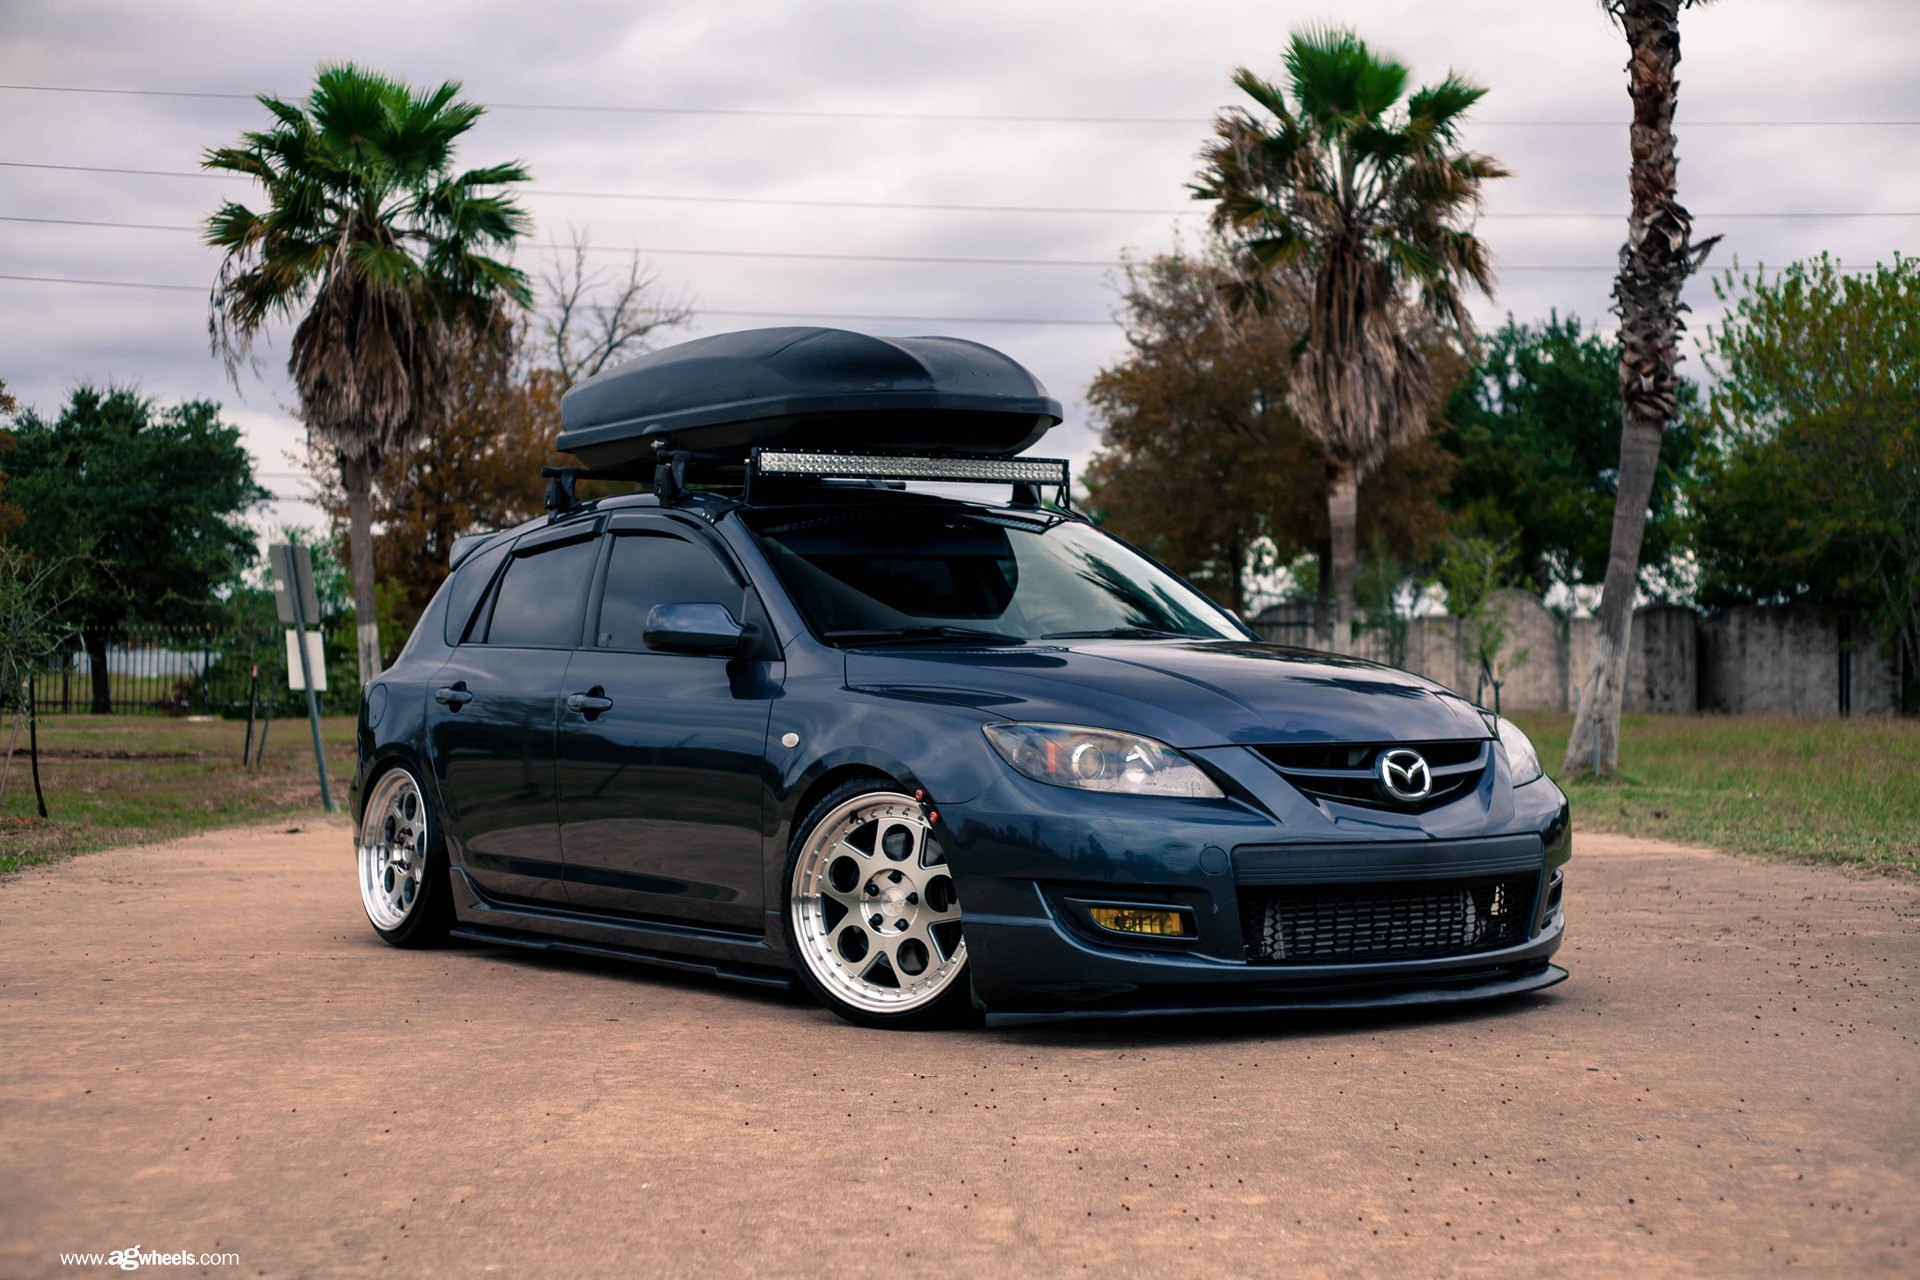 Custom Black Mazda 3 With Roof Rack   Photo By Avant Garde Wheels